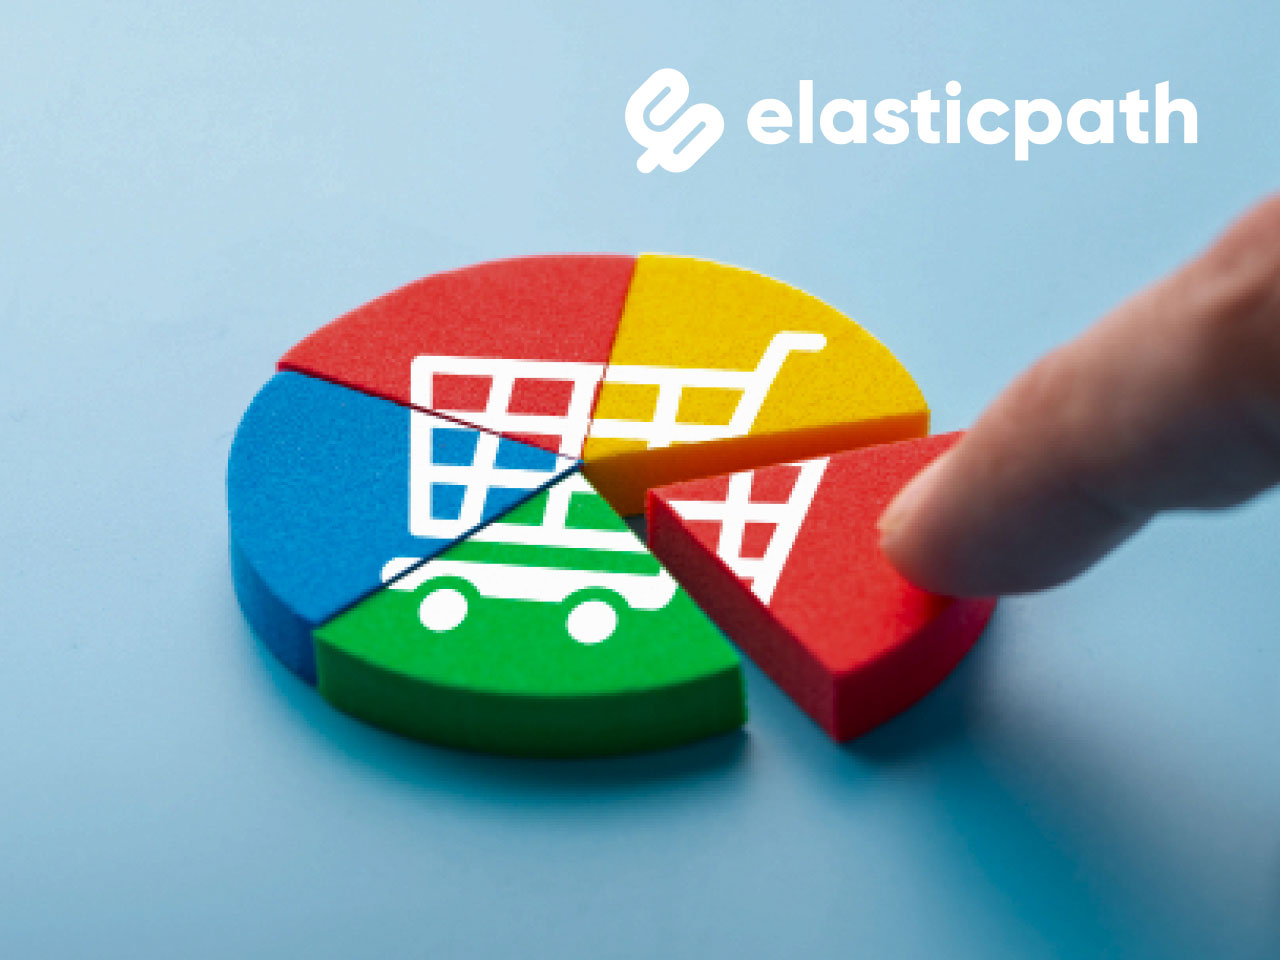 pointing finger in an ecommerce pie with elastic path logo